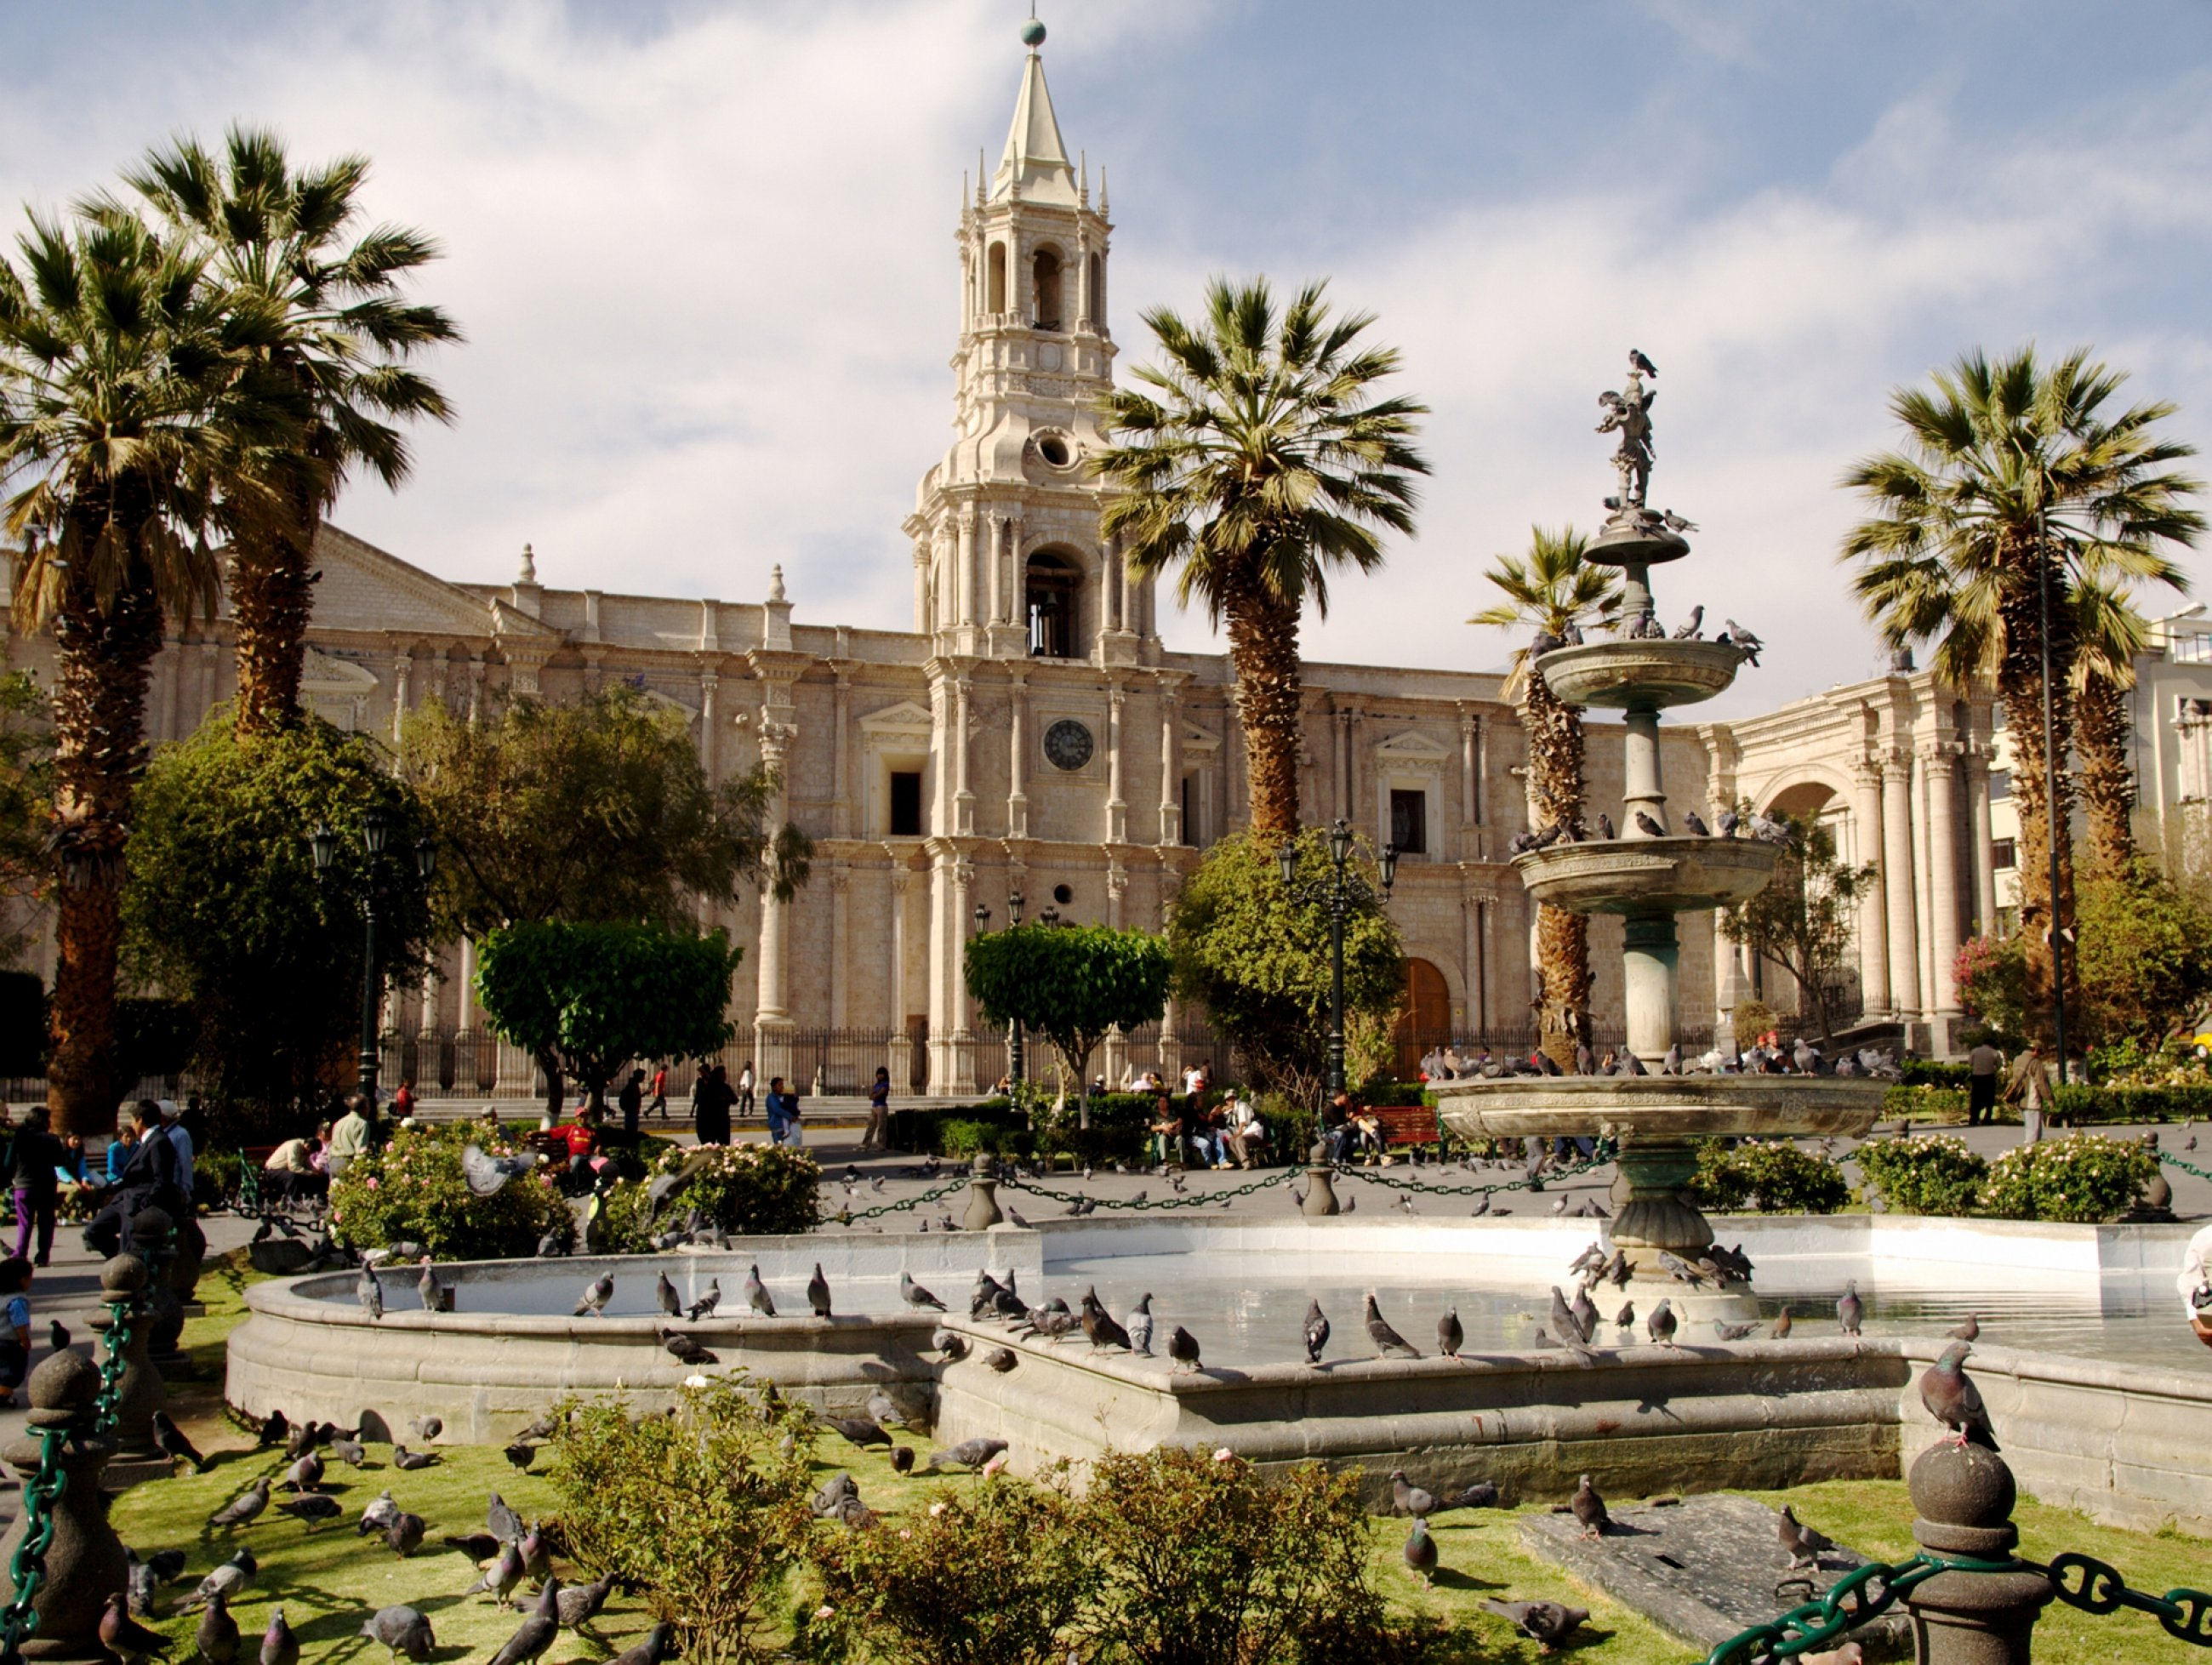 https://bubo.sk/uploads/galleries/7314/peru-main-plaza-in-arequipa.jpg